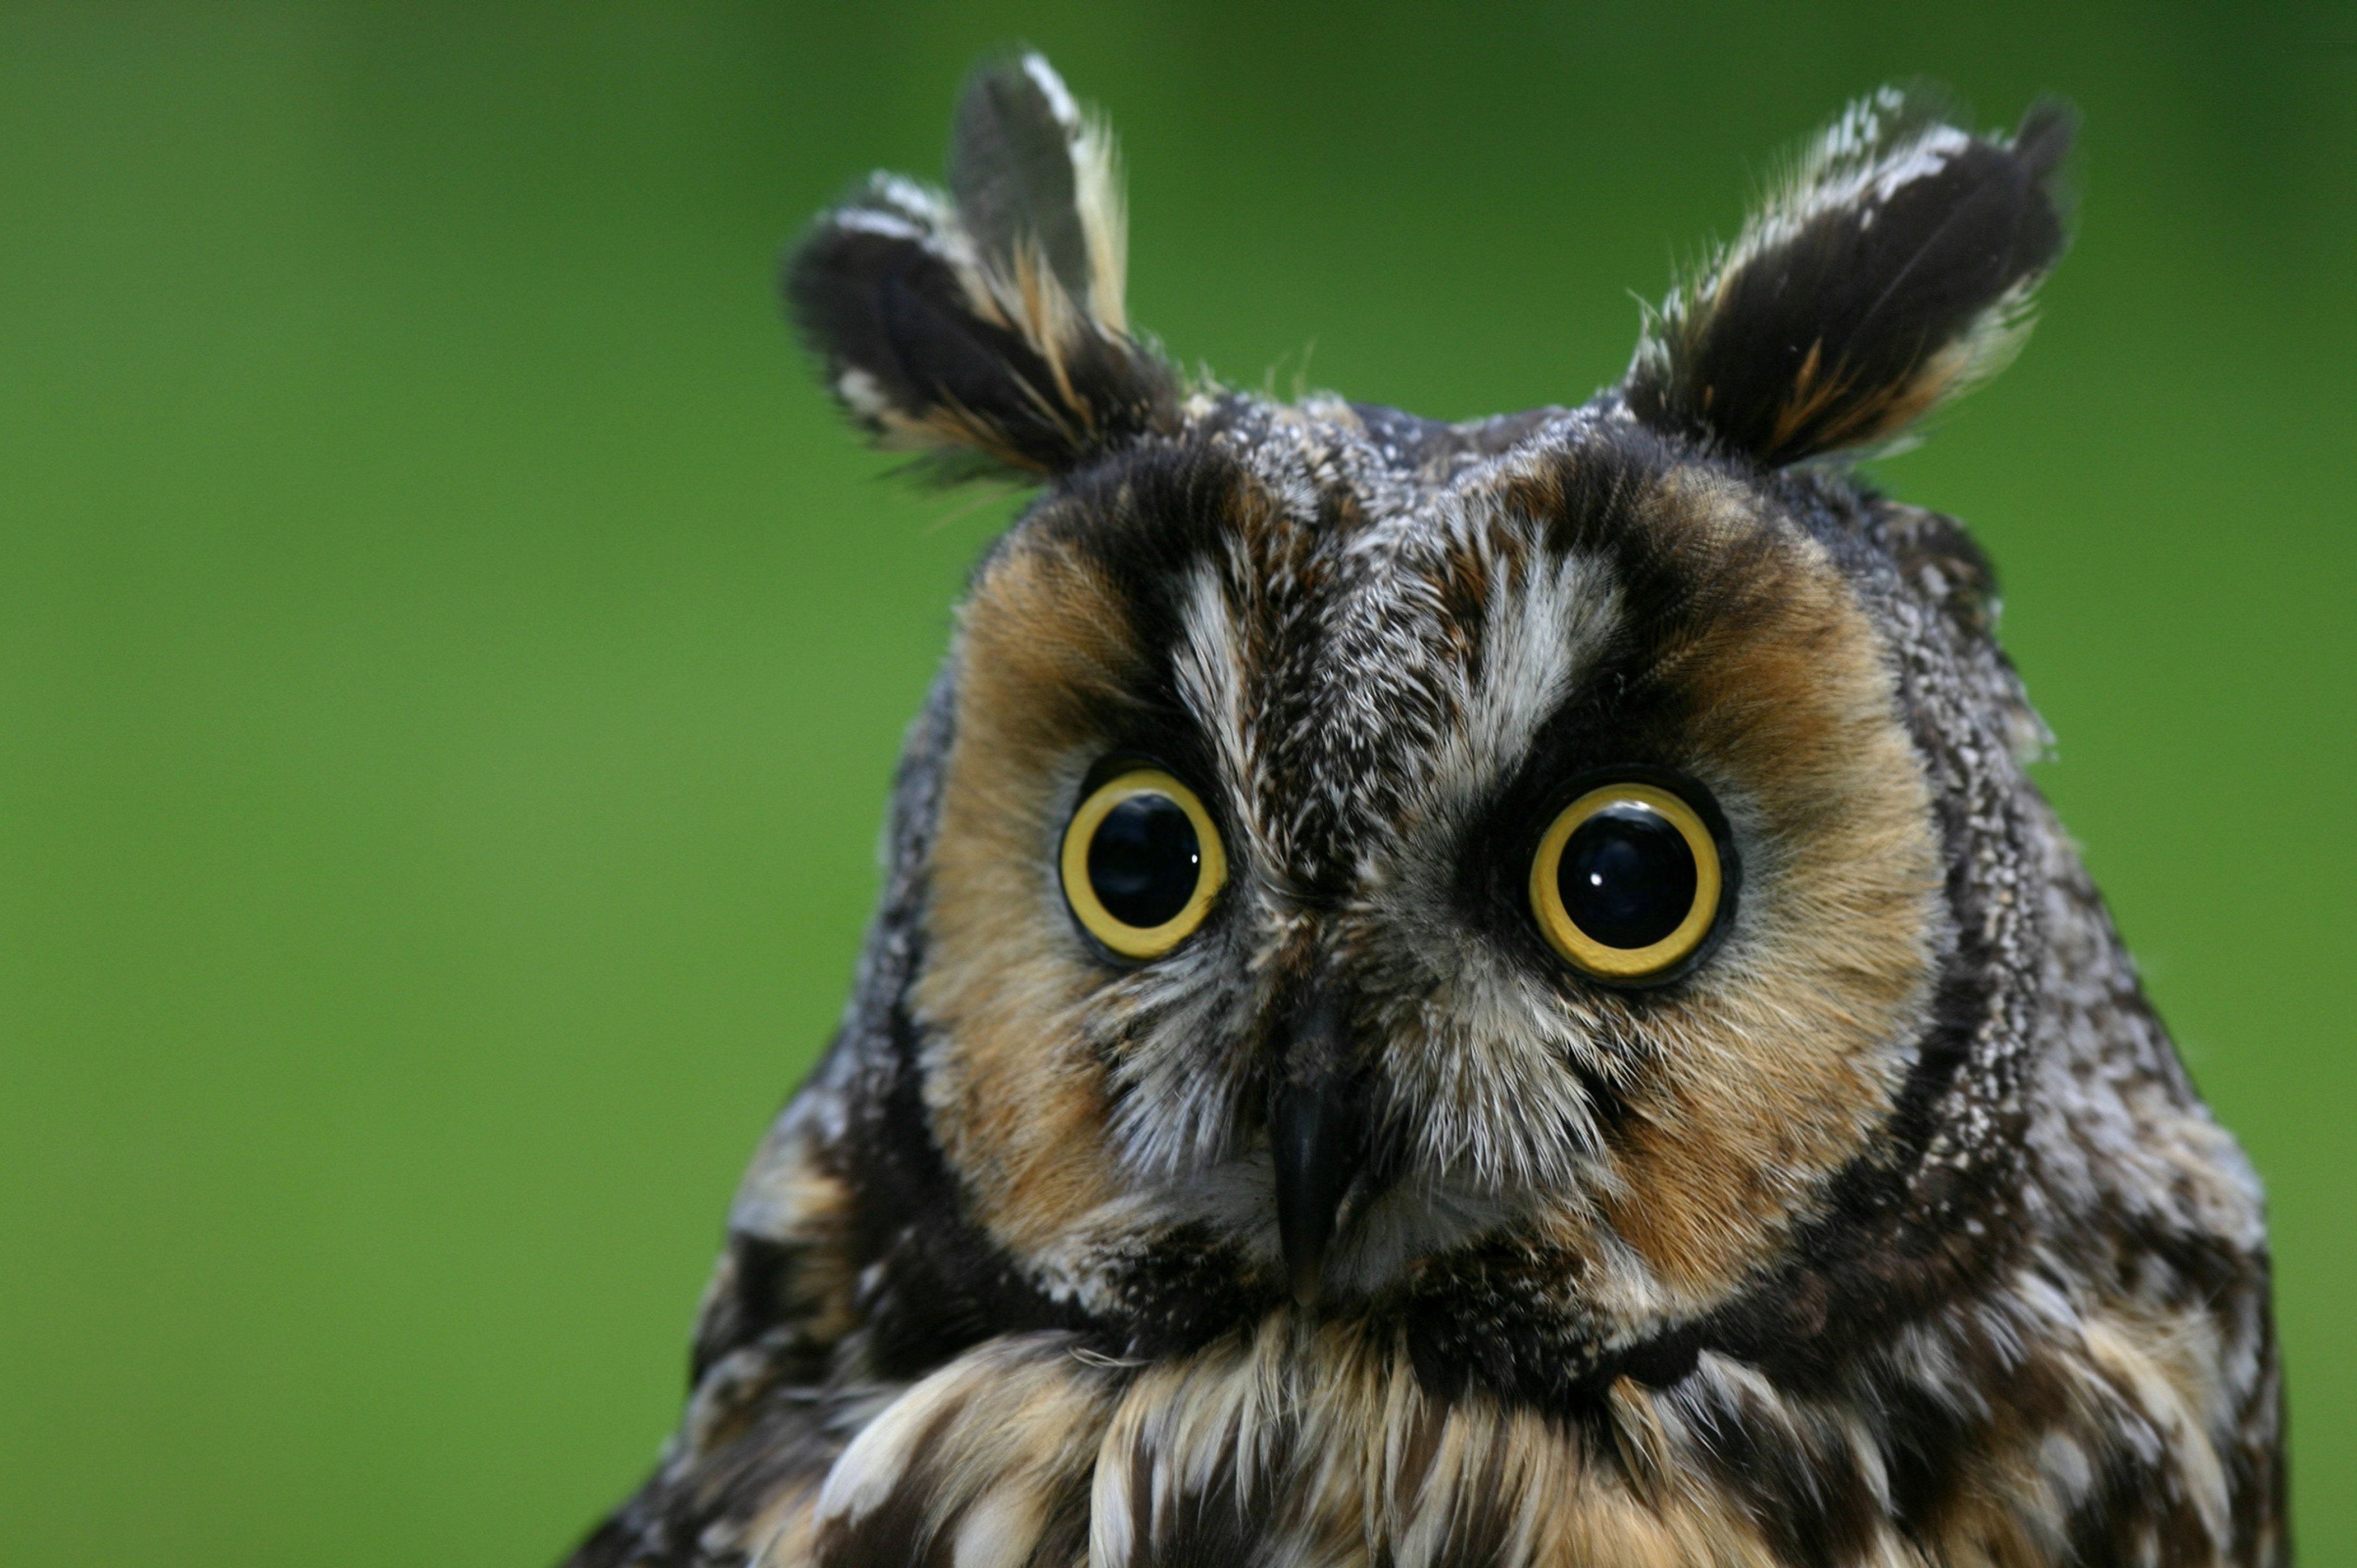 Hd Wallpaper Quotes For Android Wallpaper Owl Eagle Owl Funny Nature Plumy Animals 4075